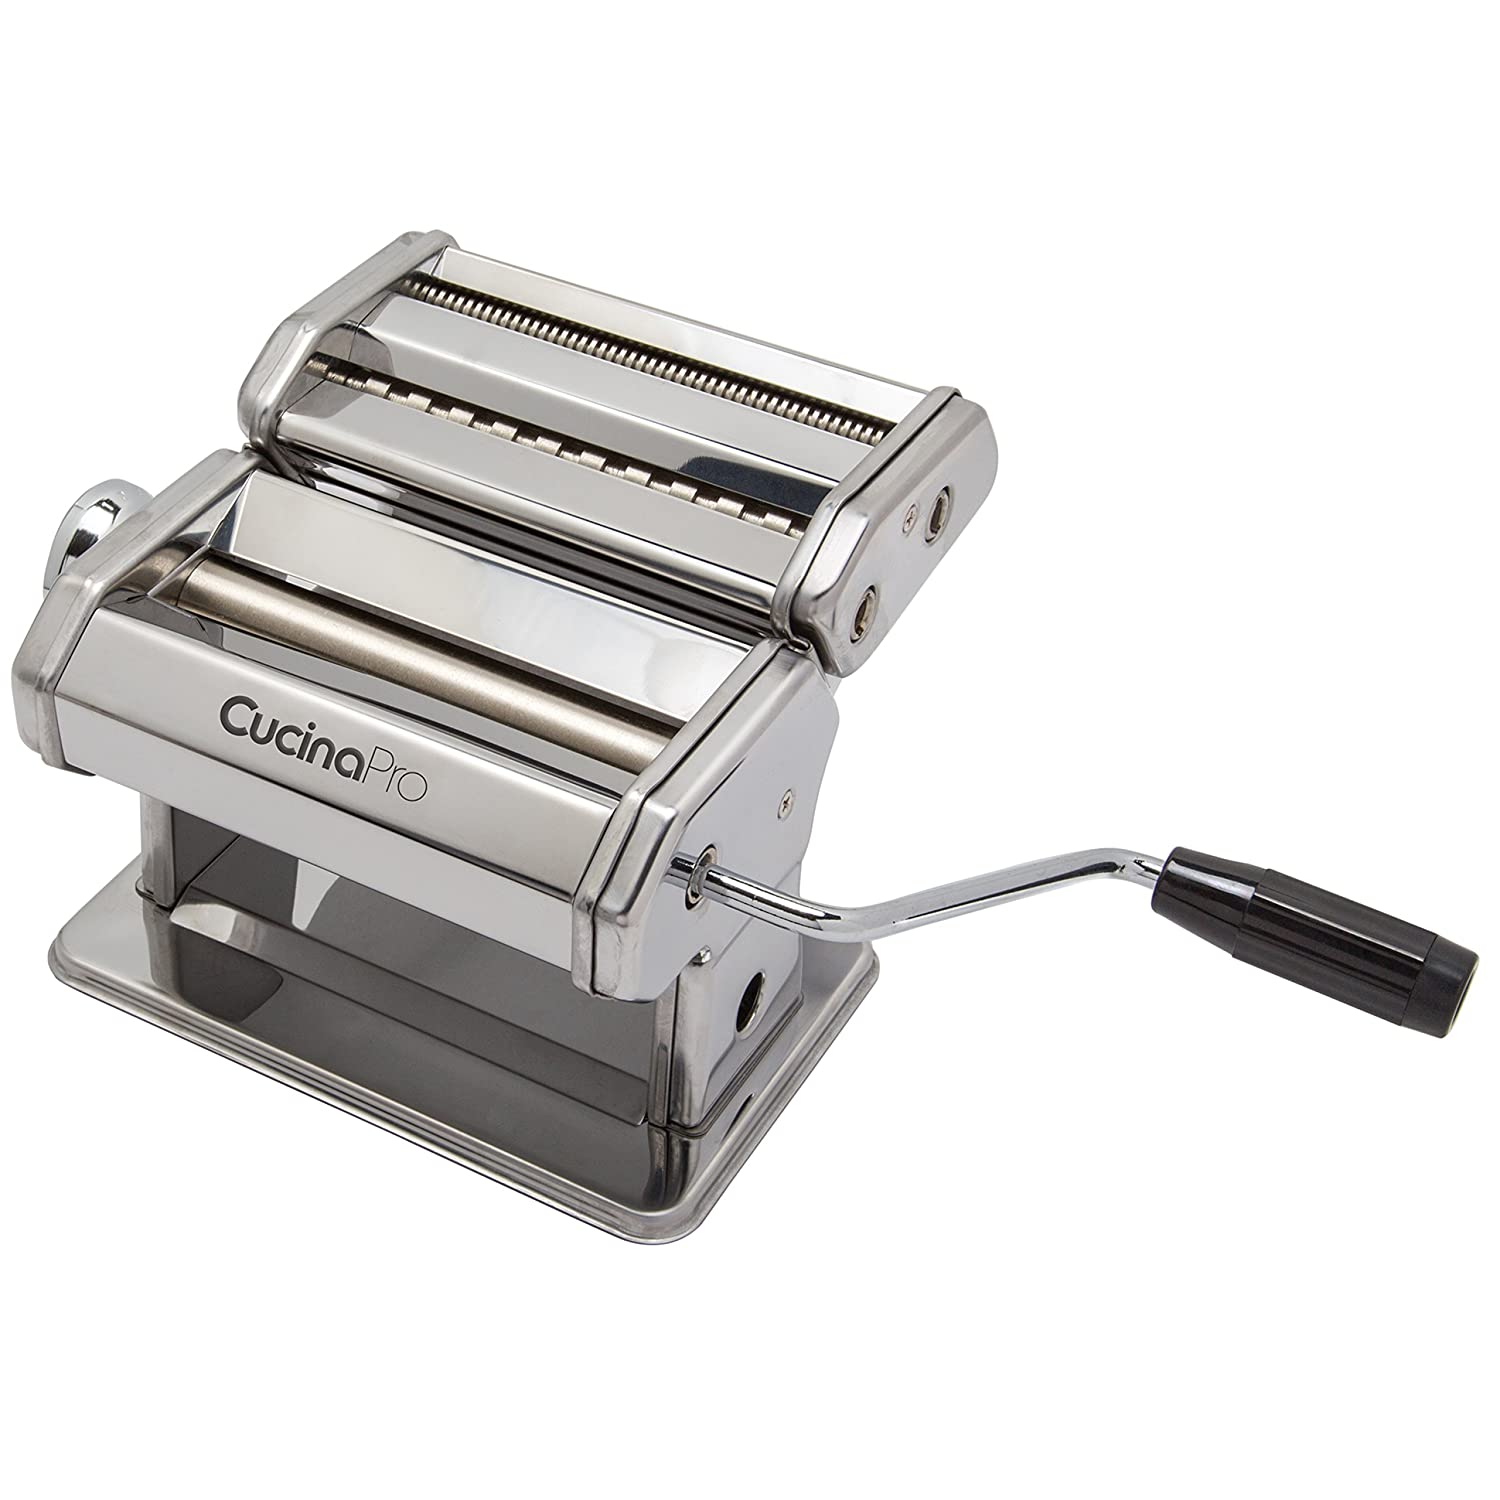 B00004SPDH Pasta Maker Machine (177) By Cucina Pro - Heavy Duty Steel Construction - with Fettucine and Spaghetti attachment and Recipes 81eiGKLVs6L